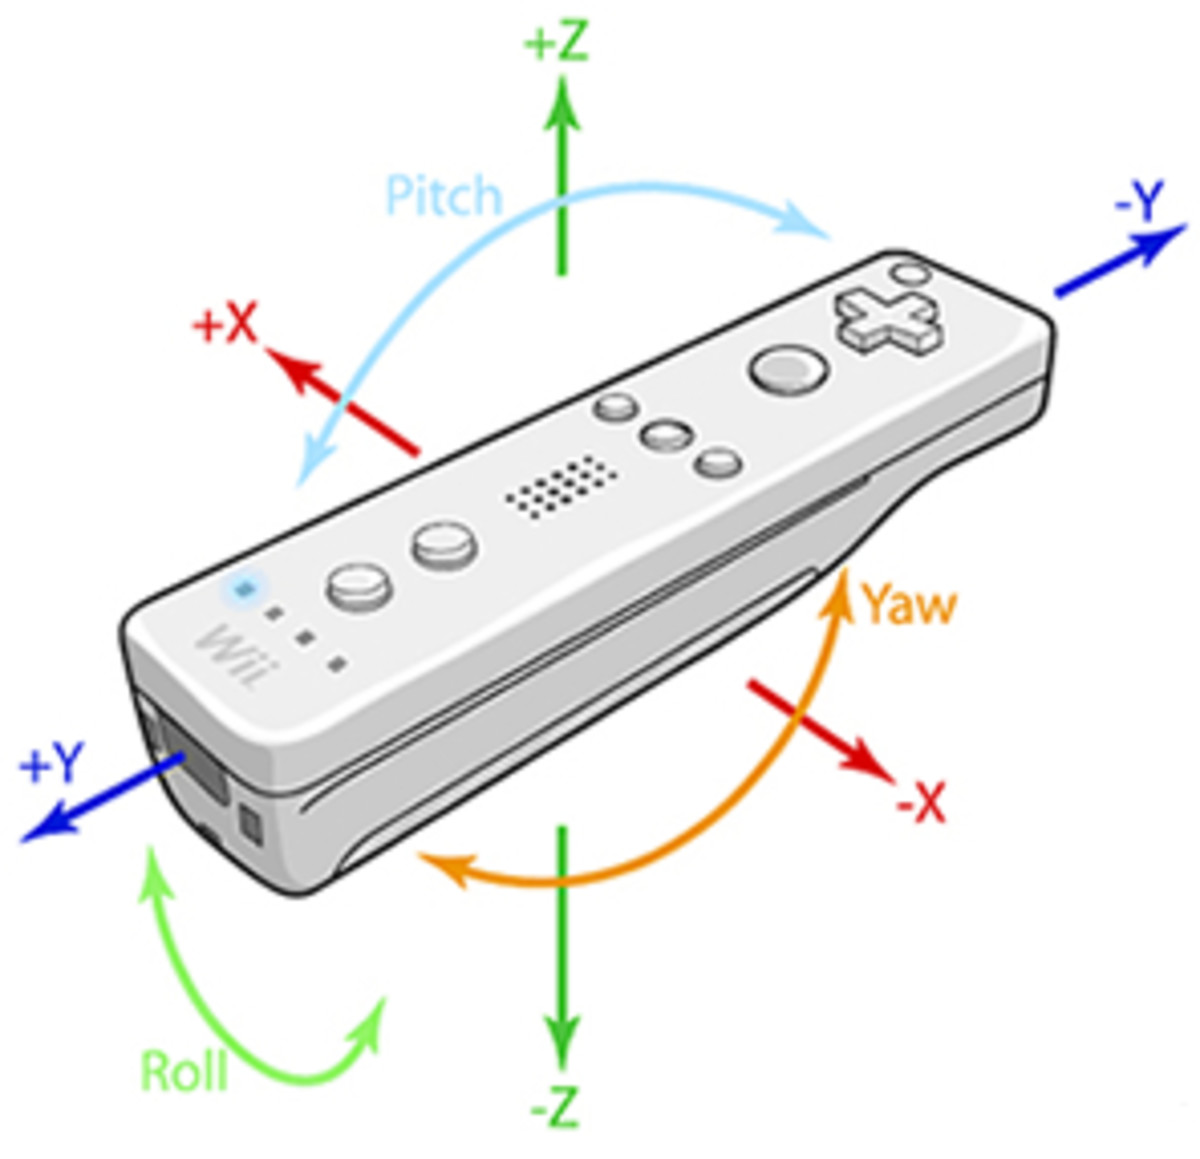 Glovepie Wiimote Wii To Midi - Controller For Ableton Live  - Tutorial